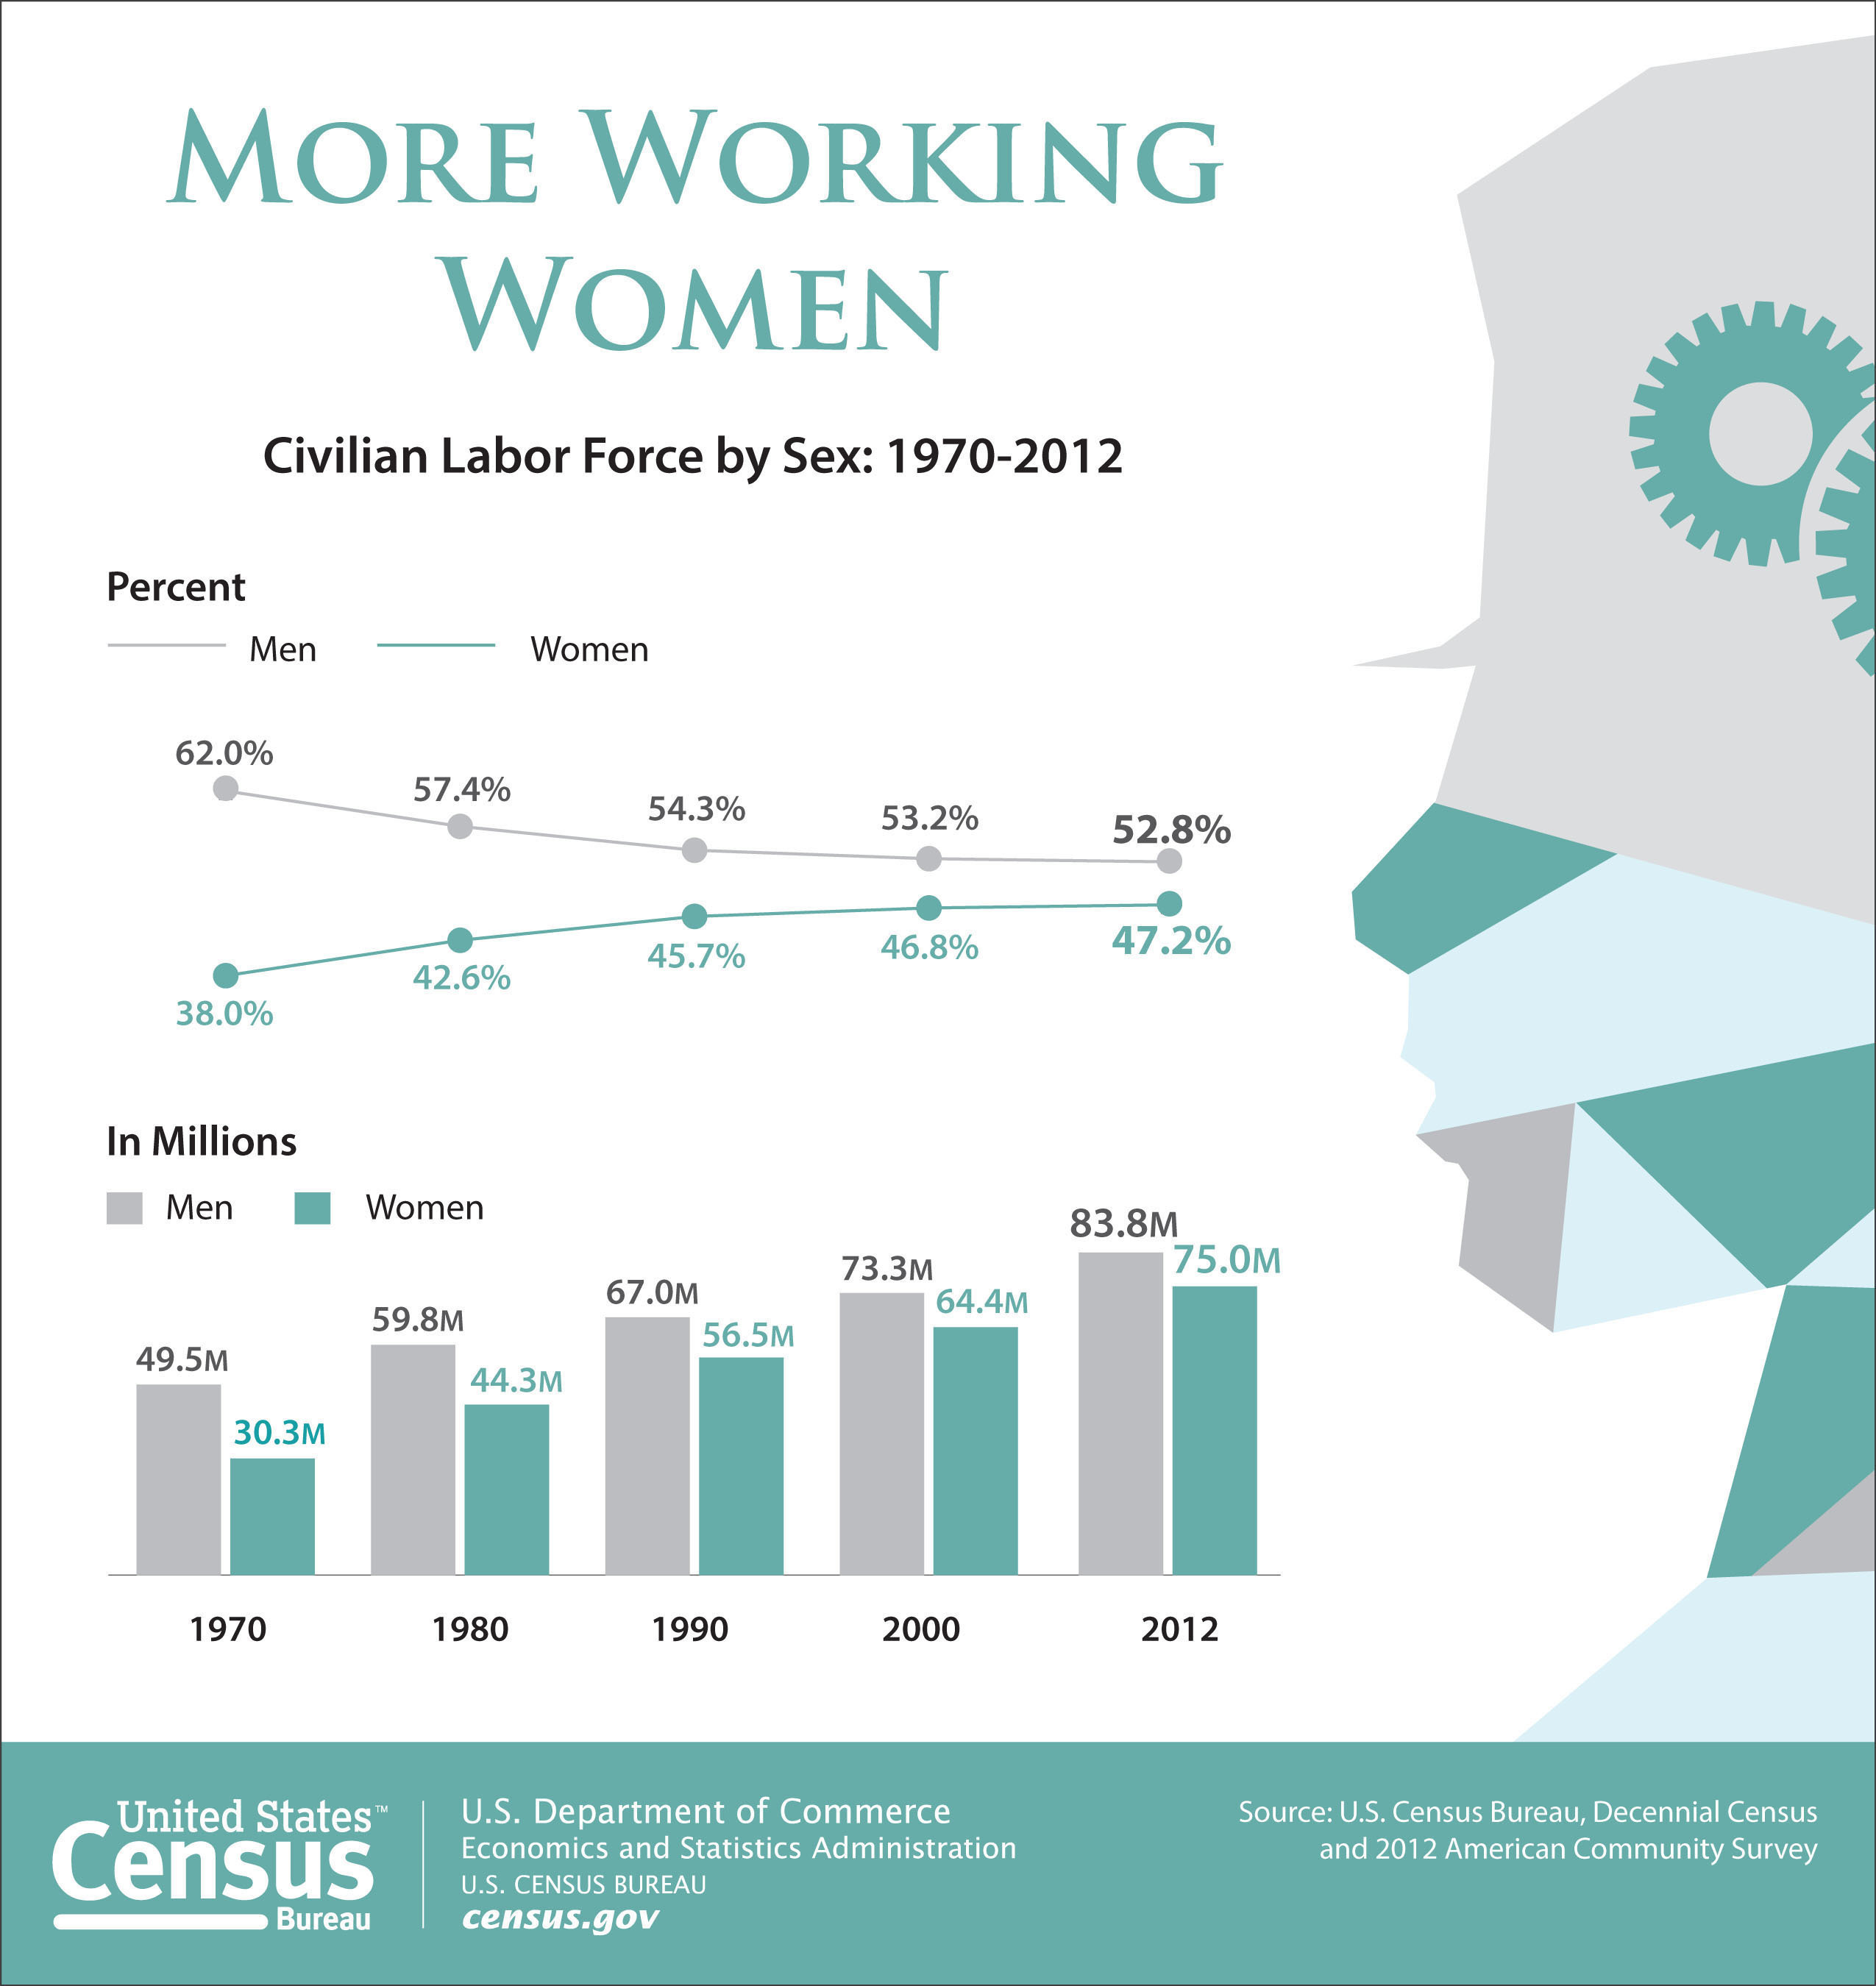 According to the Census Bureau, 75 million females age 16 and older participated in the labor force in 2012. Women comprised 47.2 percent of workers in 2012. More: http://www.census.gov/newsroom/releases/archives/facts_for_features_special_editions/.  (PRNewsFoto/U.S. Census Bureau)